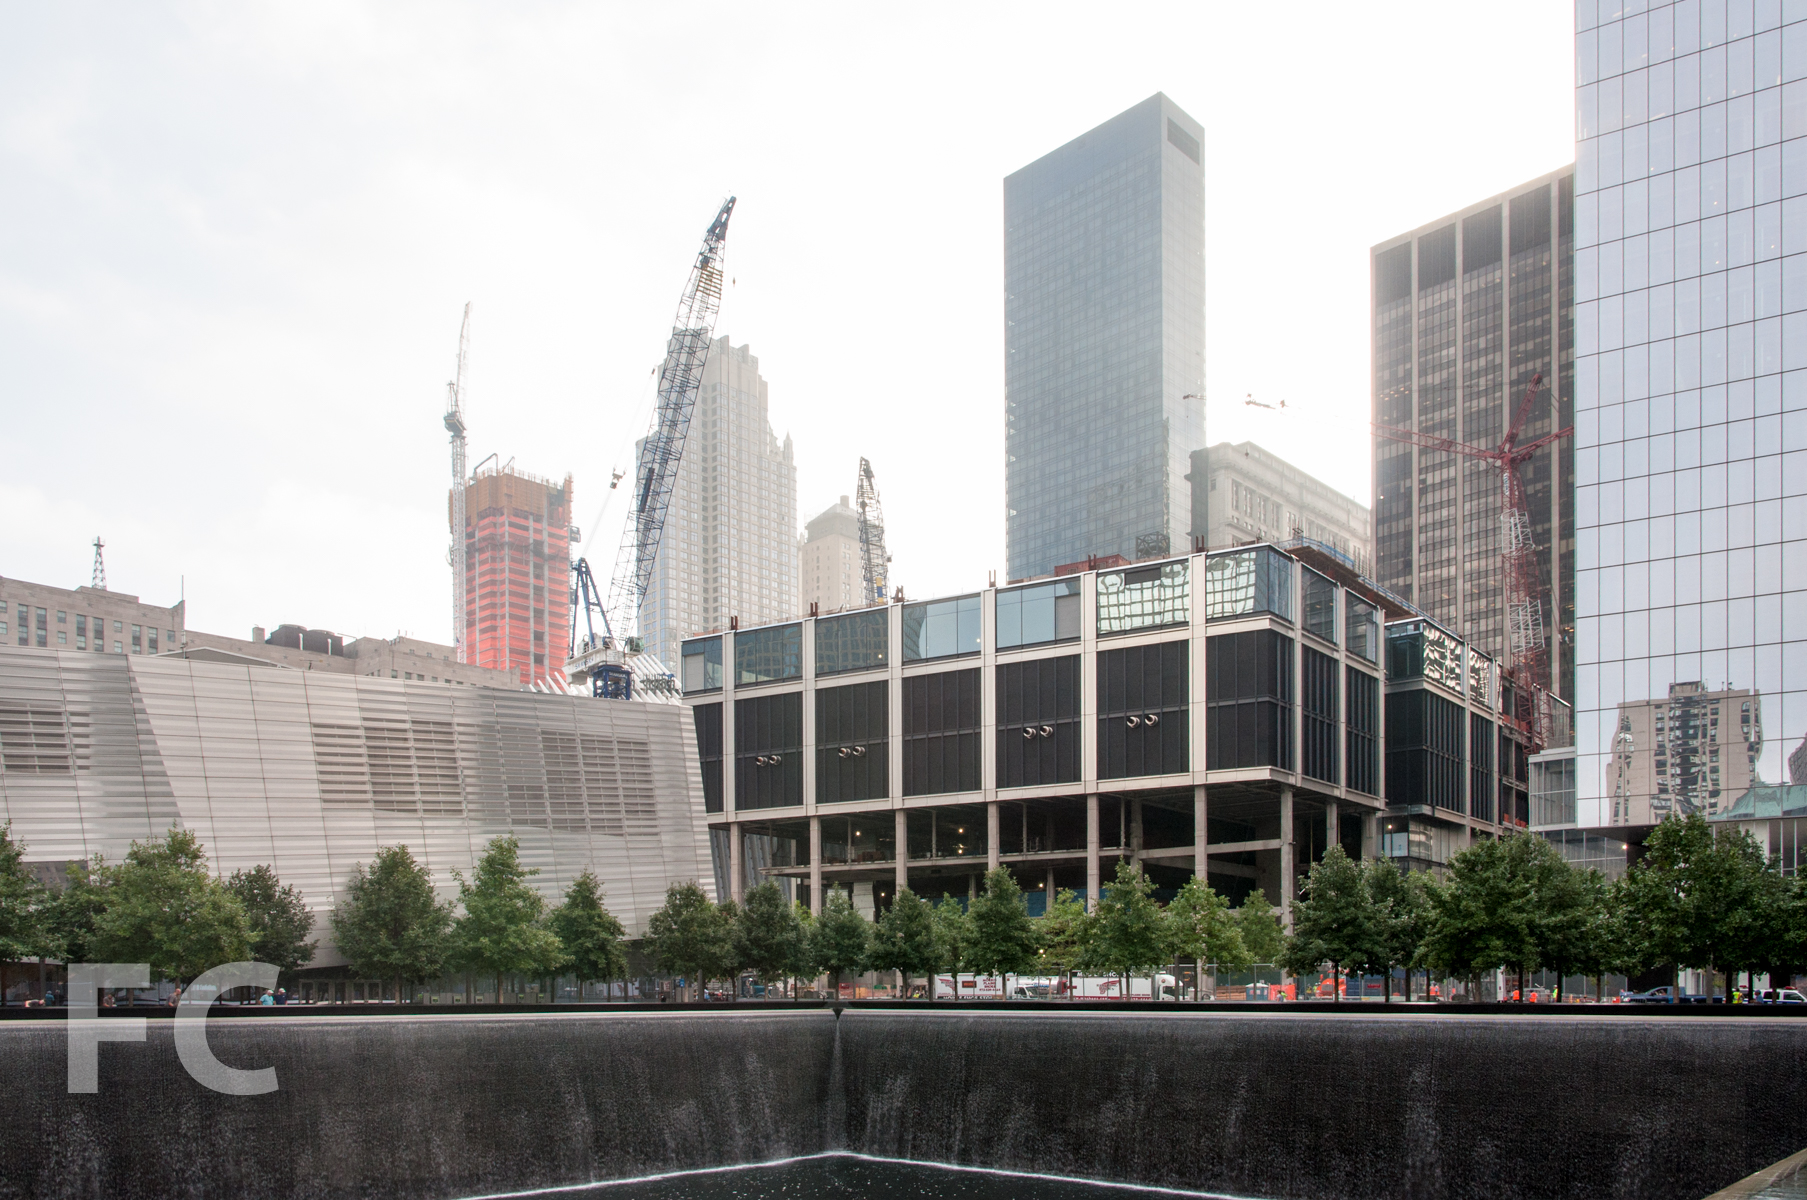 The WTC museum (left), 3 WTC (center), and 4 WTC (right) seen from the Memorial pools with 30 Park Place under constructionin the background.